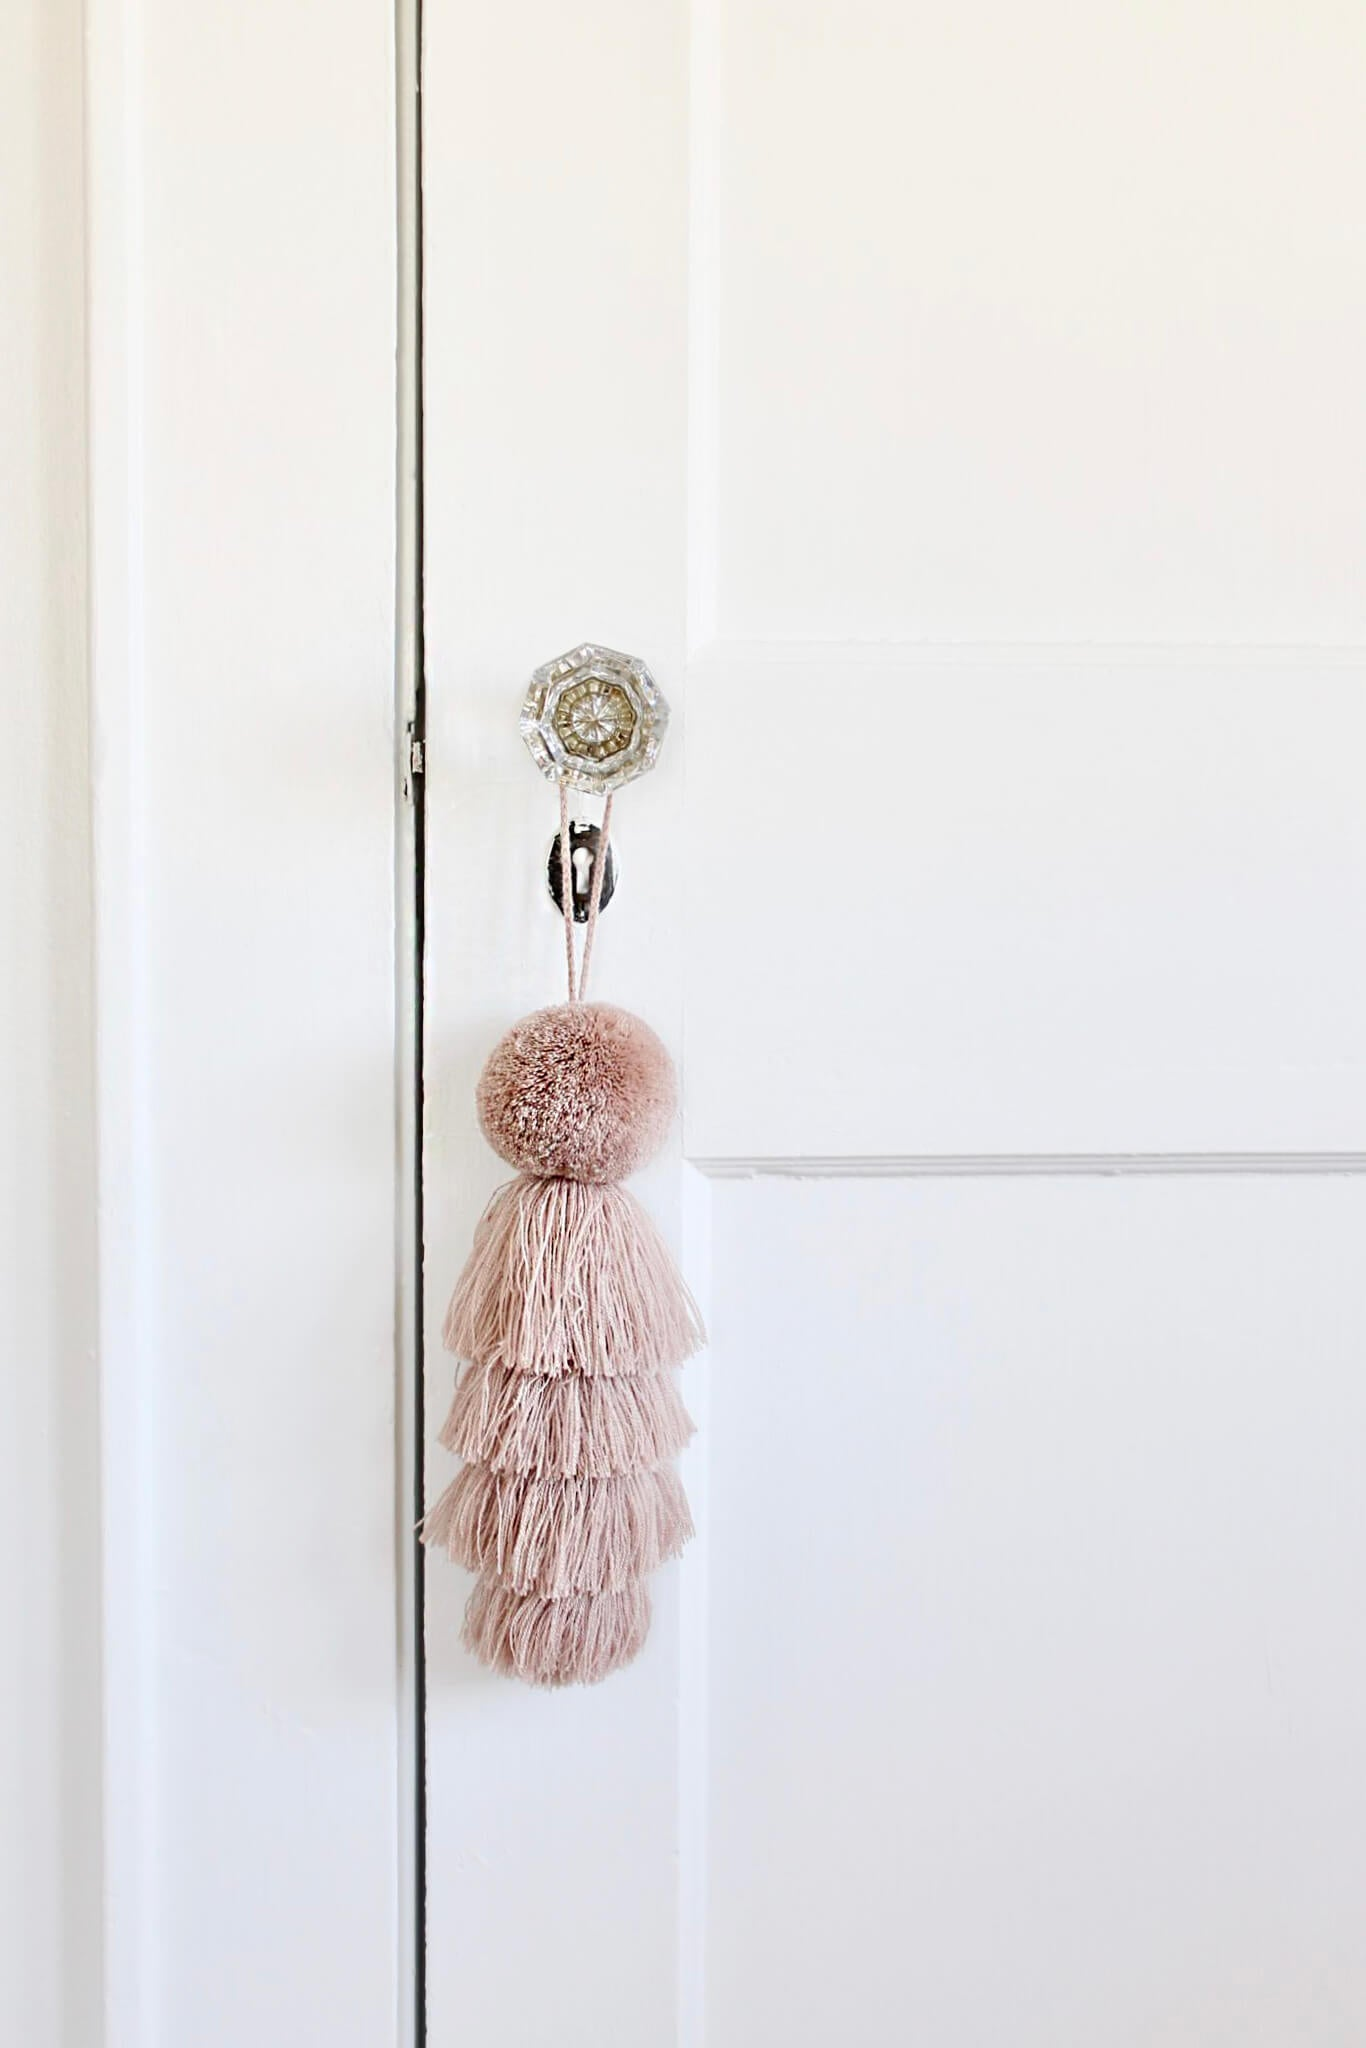 Blush pink tassel on glass door knob in white baby girl nursery interior